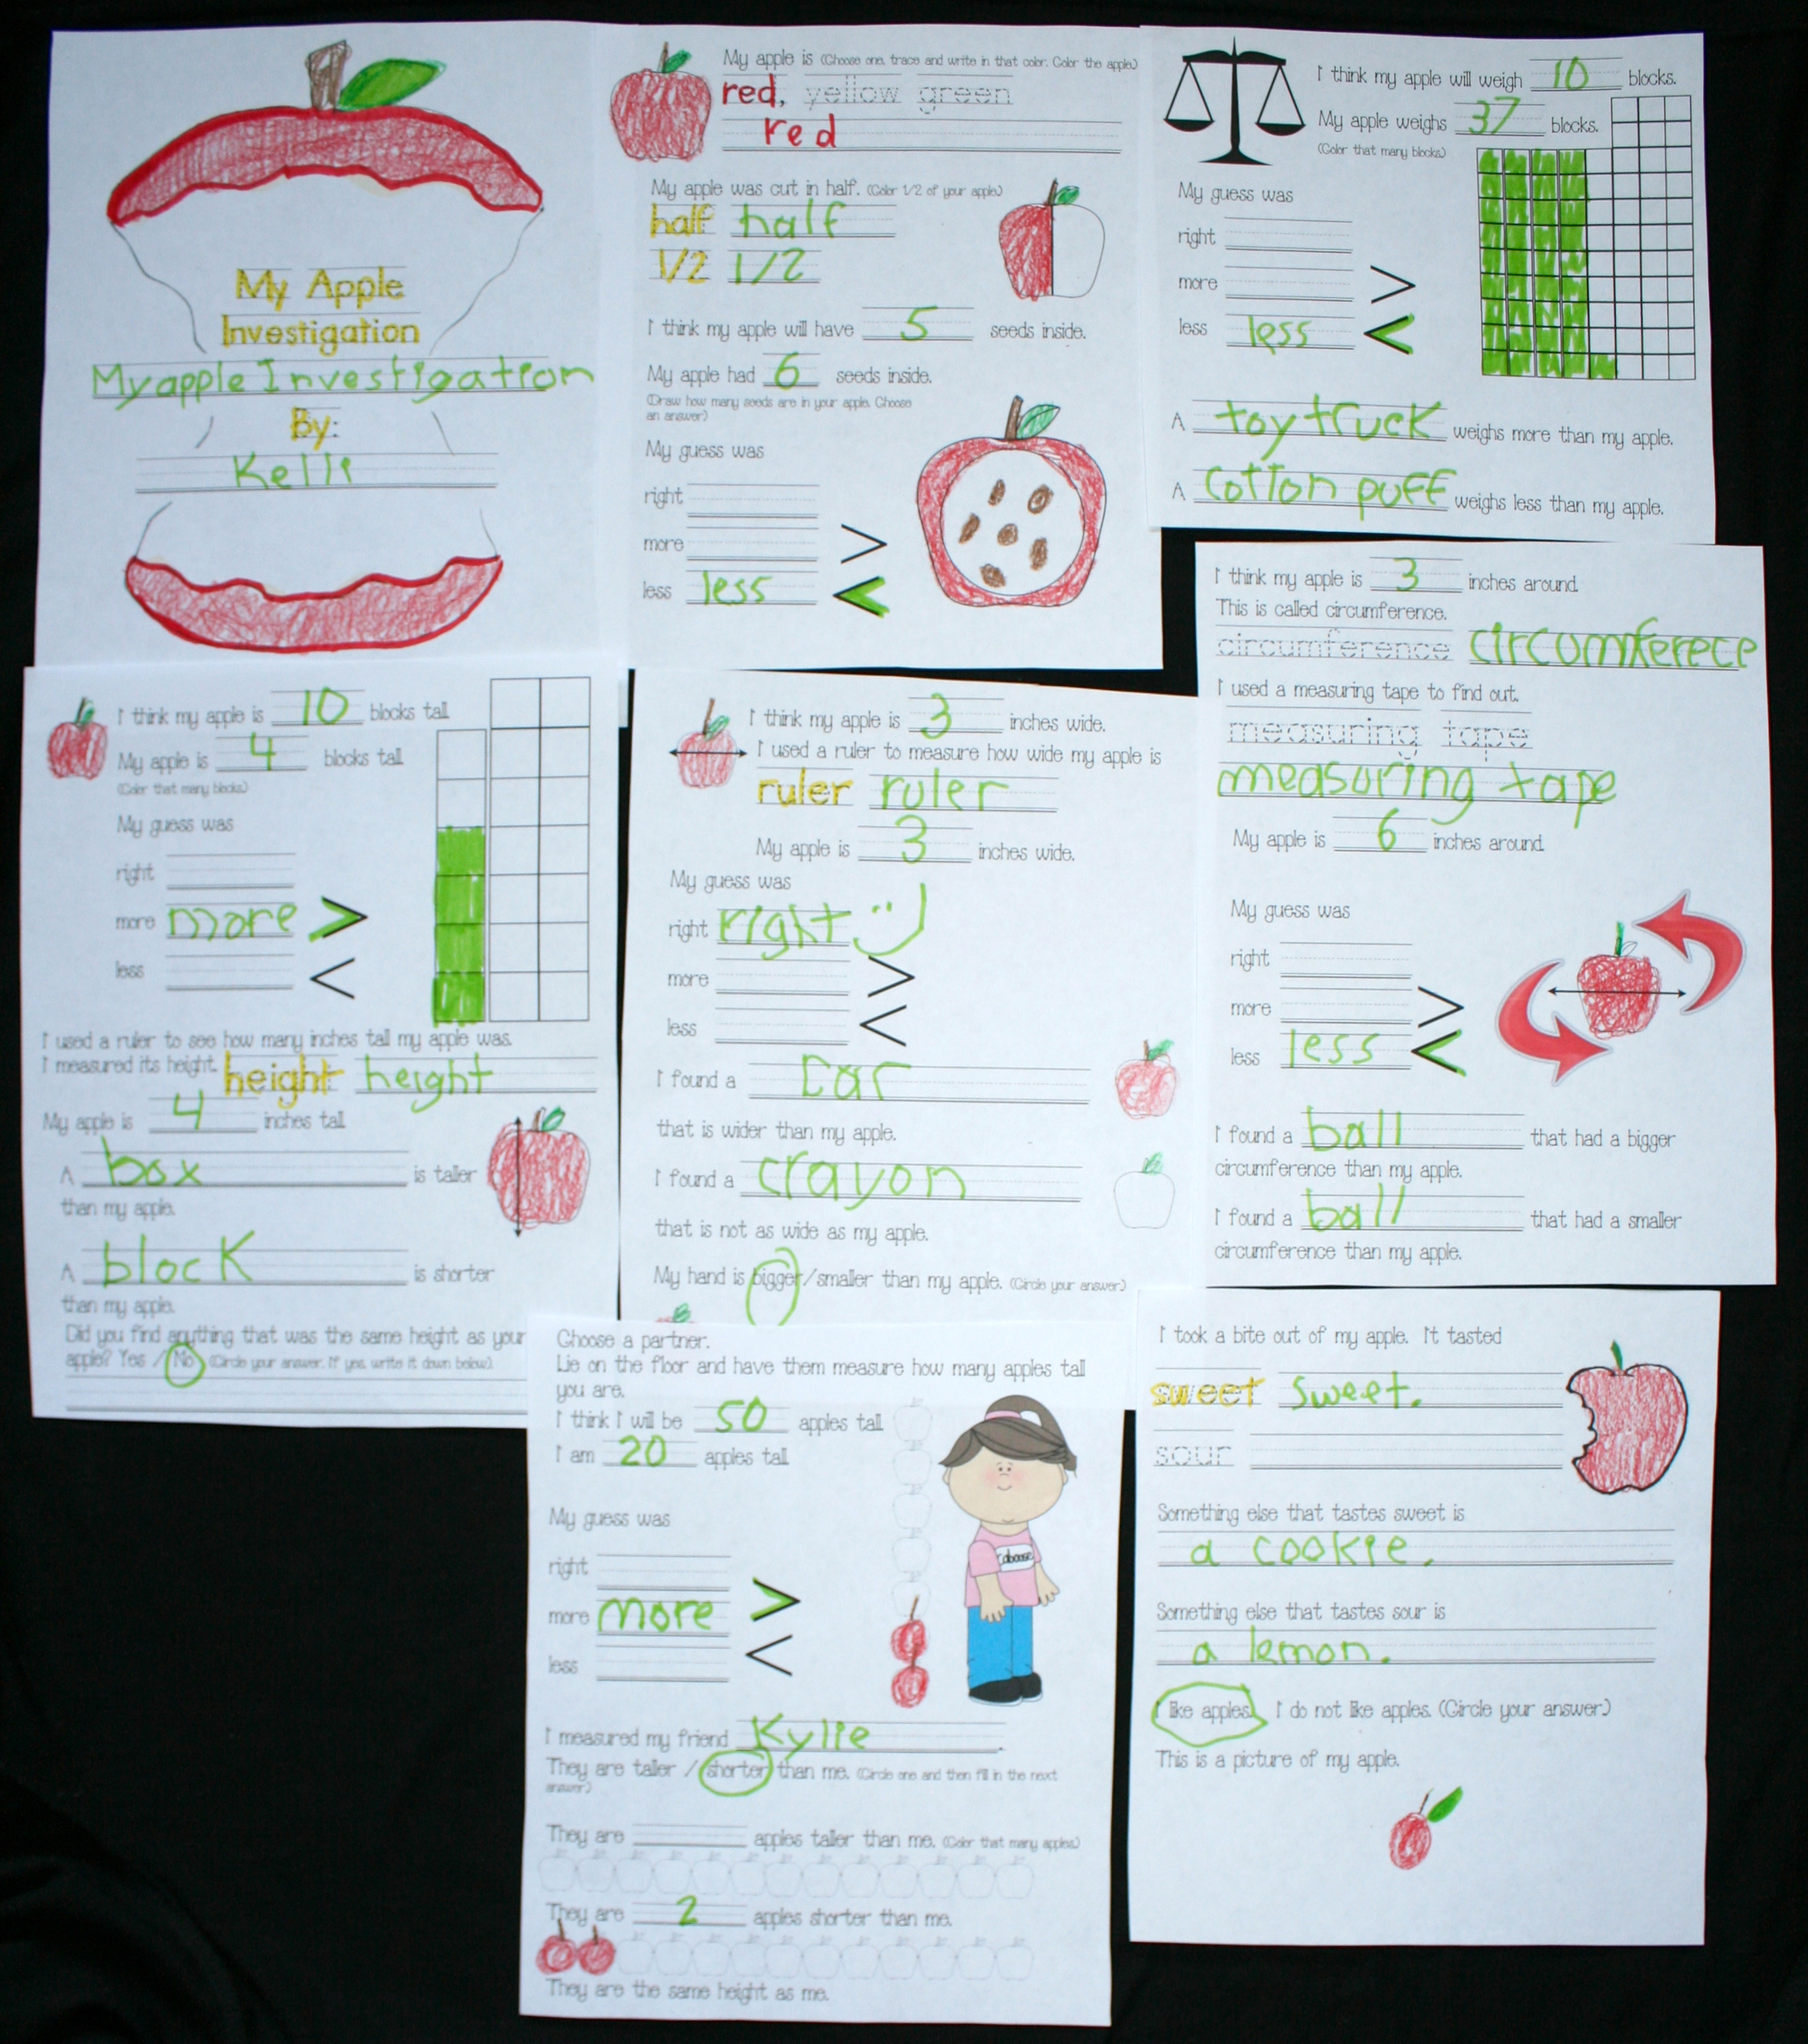 apple activities, apple lessons, apple booklet, measuring apples, apple investigations, apple science, apple measurement, apple centers, apple booklet, measurment activities, measurment lessons, free common core state standards for math for kindergarten, common core state standards for 1st grade, 1.MD.1, !.MD.2, K.MD.1a, K.MD.2, weighing activities, ruler activities,